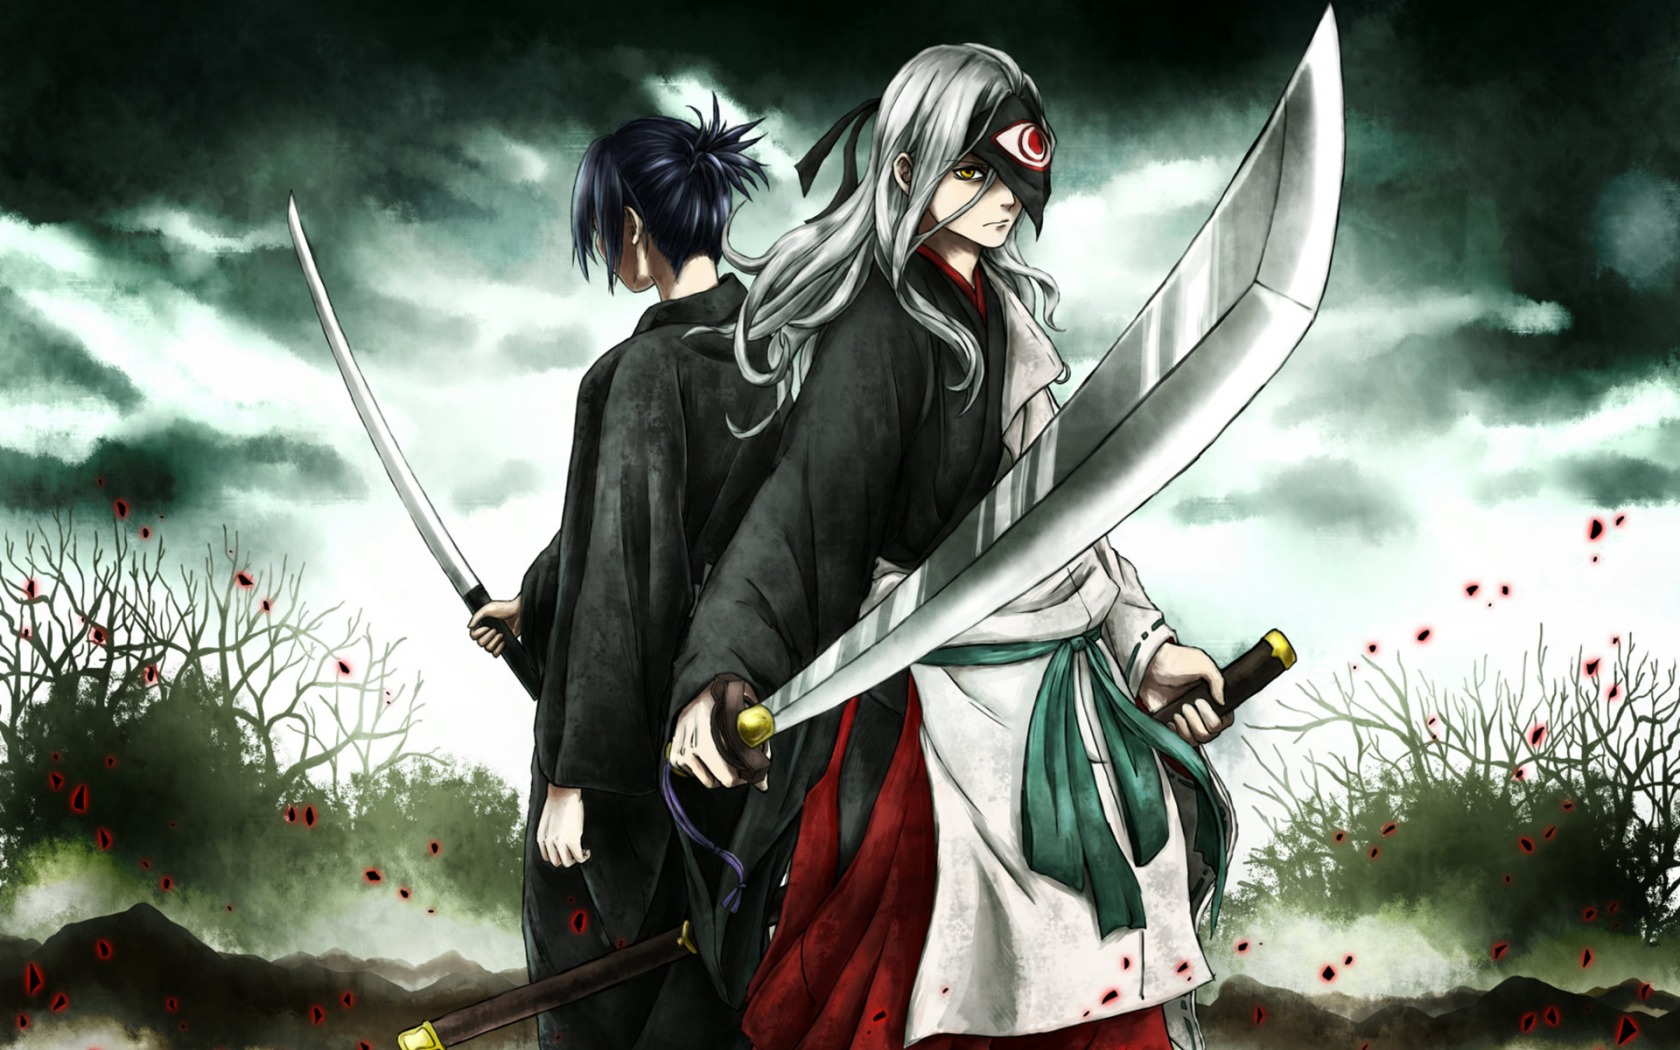 Noragami wallpaper and background image 1680x1050 id - Yato wallpaper ...